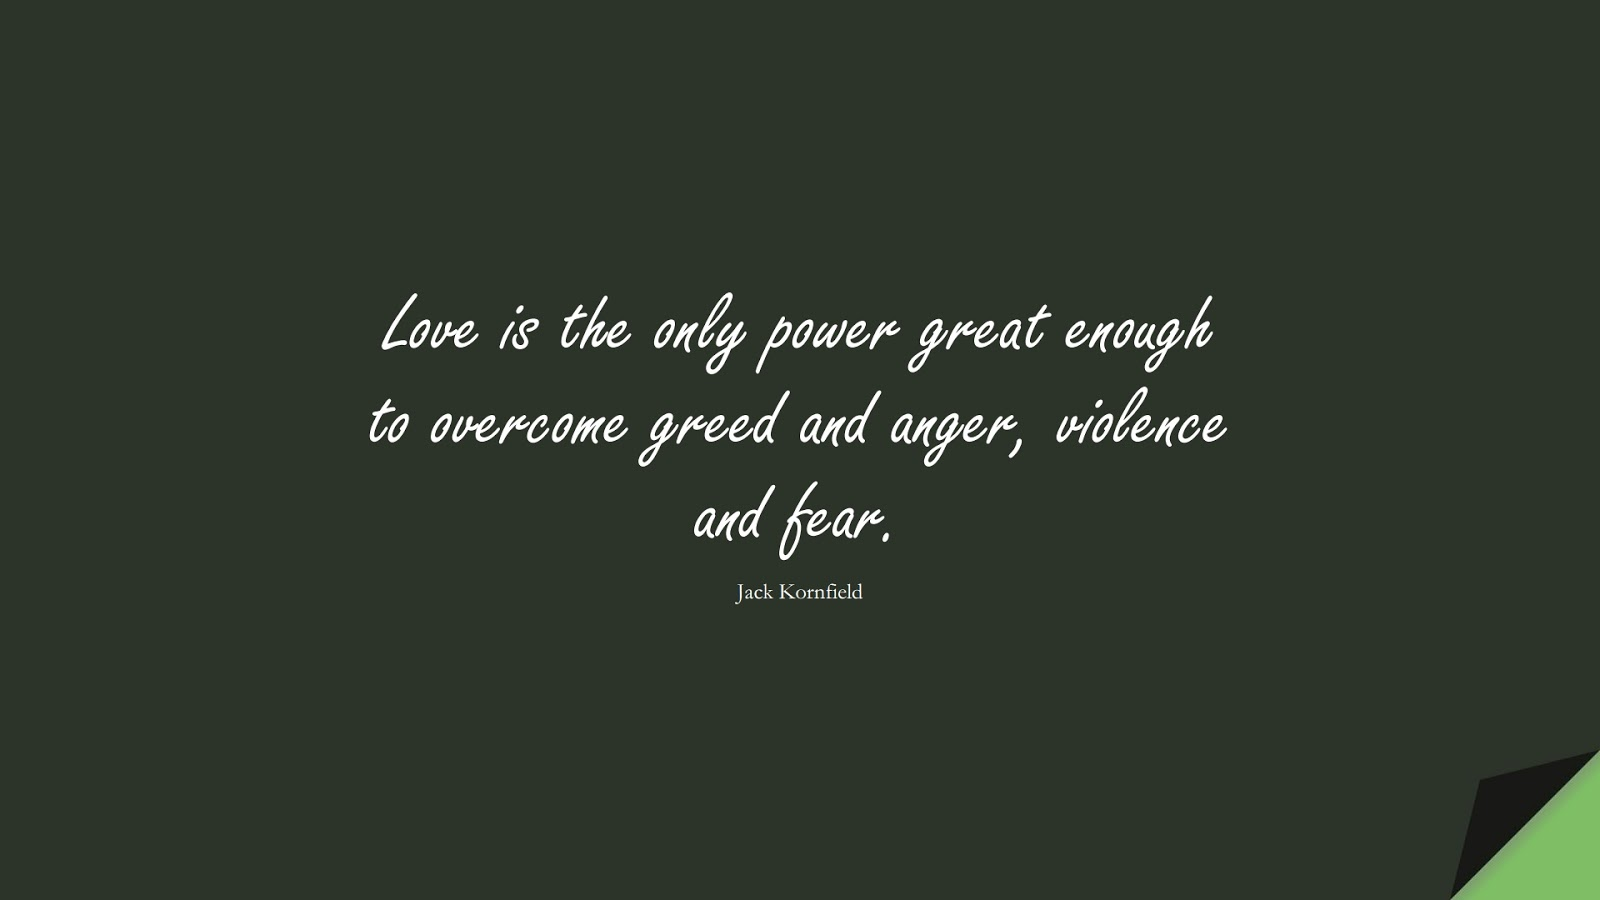 Love is the only power great enough to overcome greed and anger, violence and fear. (Jack Kornfield);  #FearQuotes